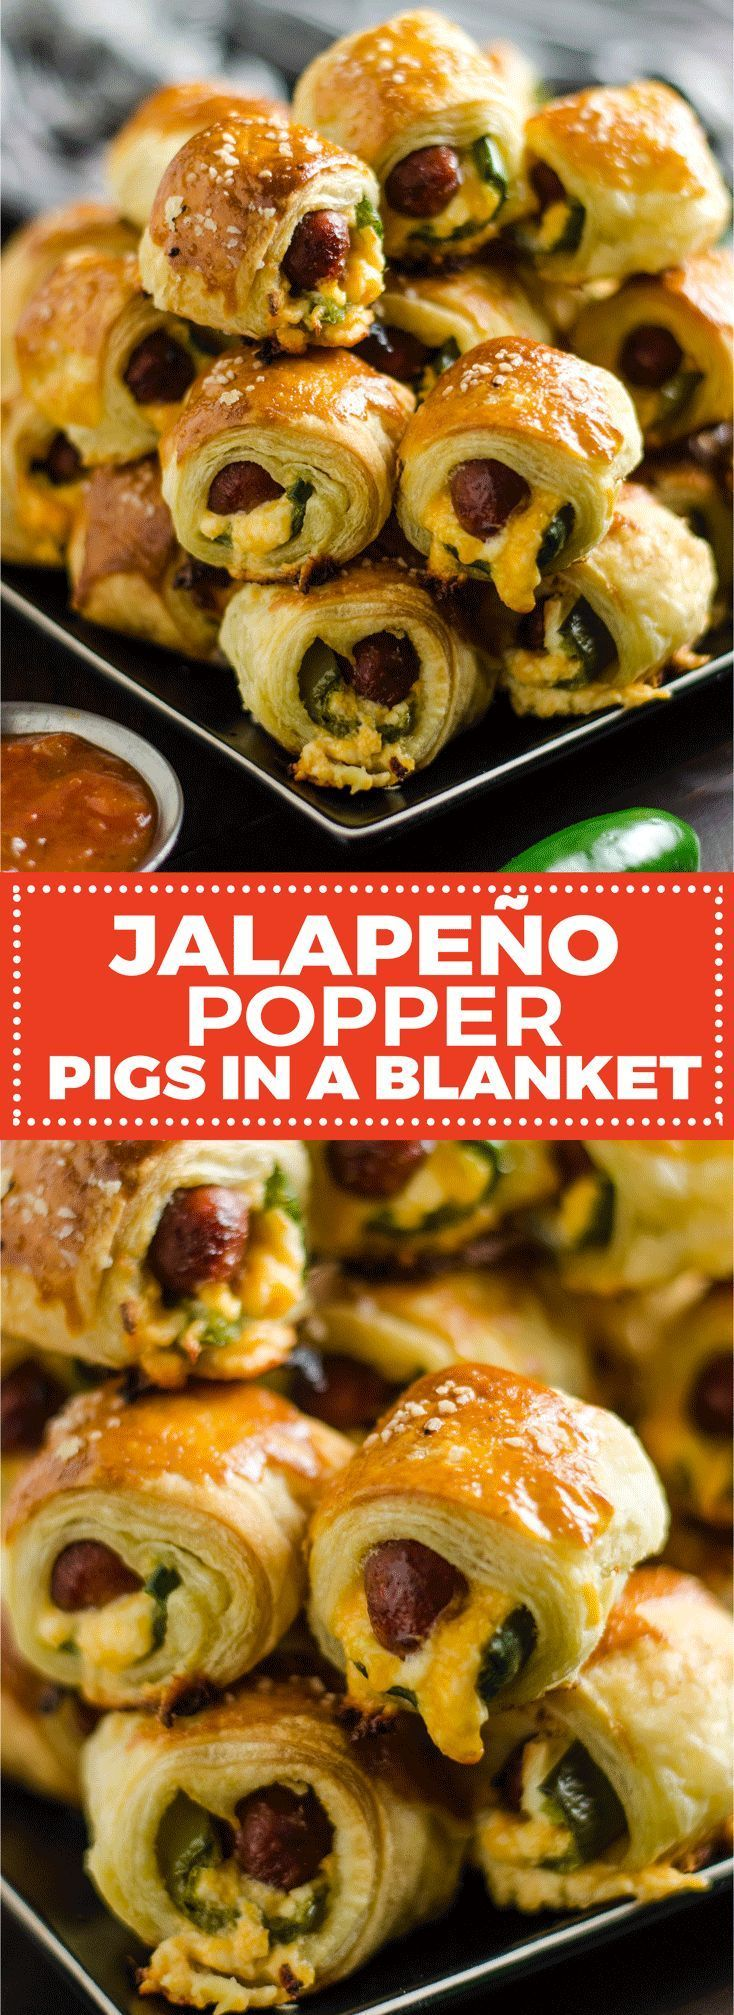 833 best manly food images on pinterest drinks rezepte and sandwiches jalapeno popper pigs in a blanket these spicy cheesy appetizers are perfect for your forumfinder Gallery